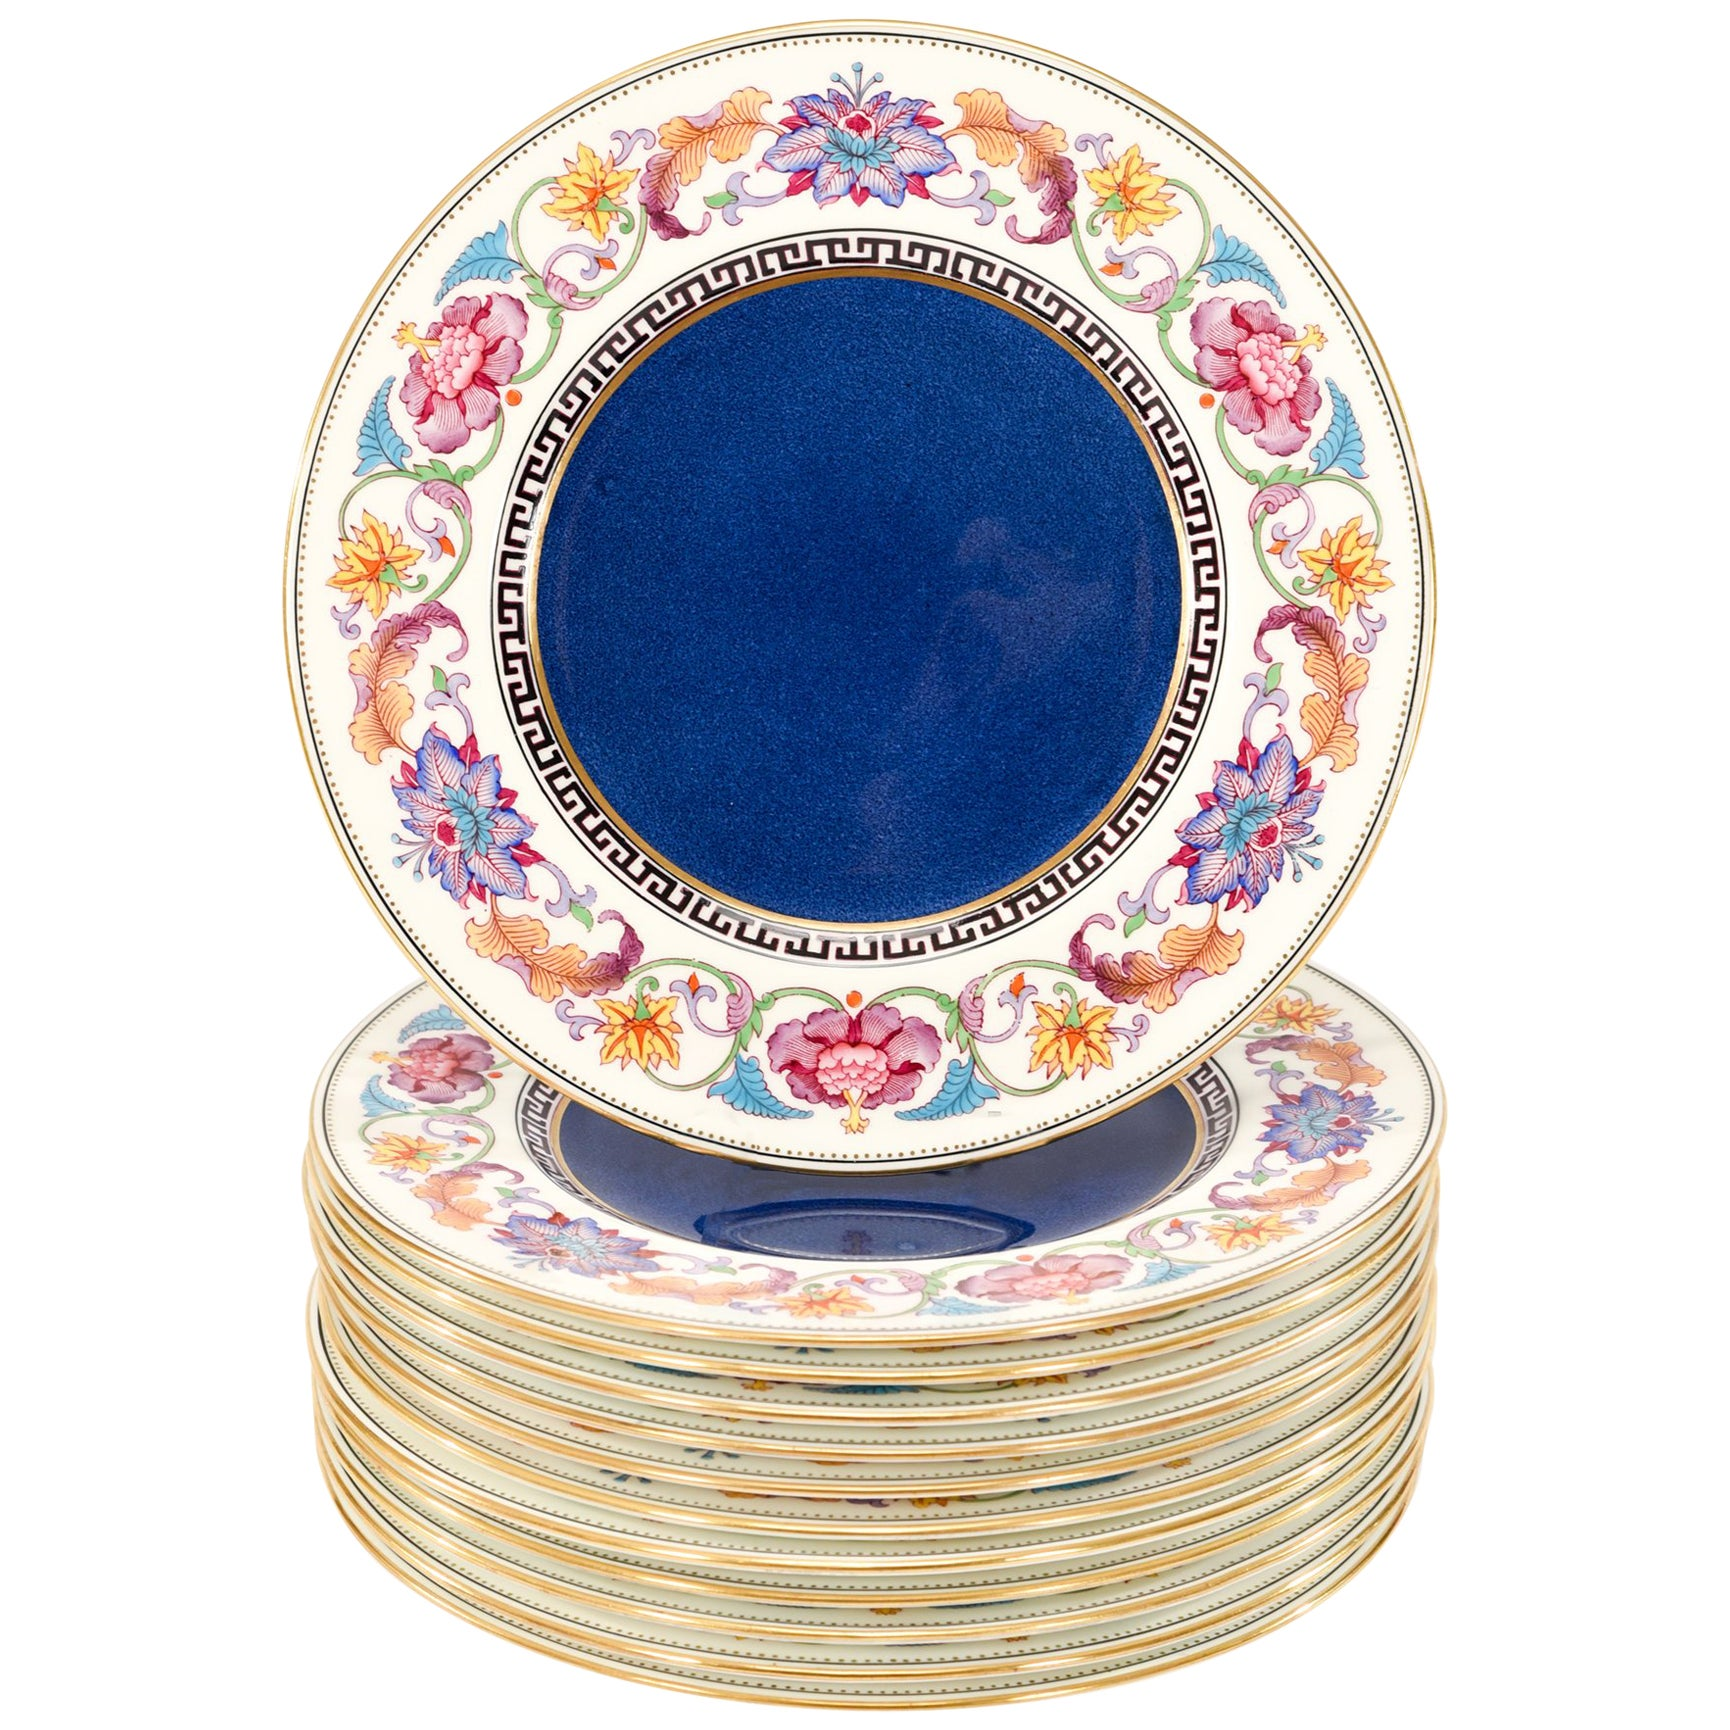 Set of 12 Wedgwood Dinner Plates with Cobalt Centers & Aesthetic Movement Enamel